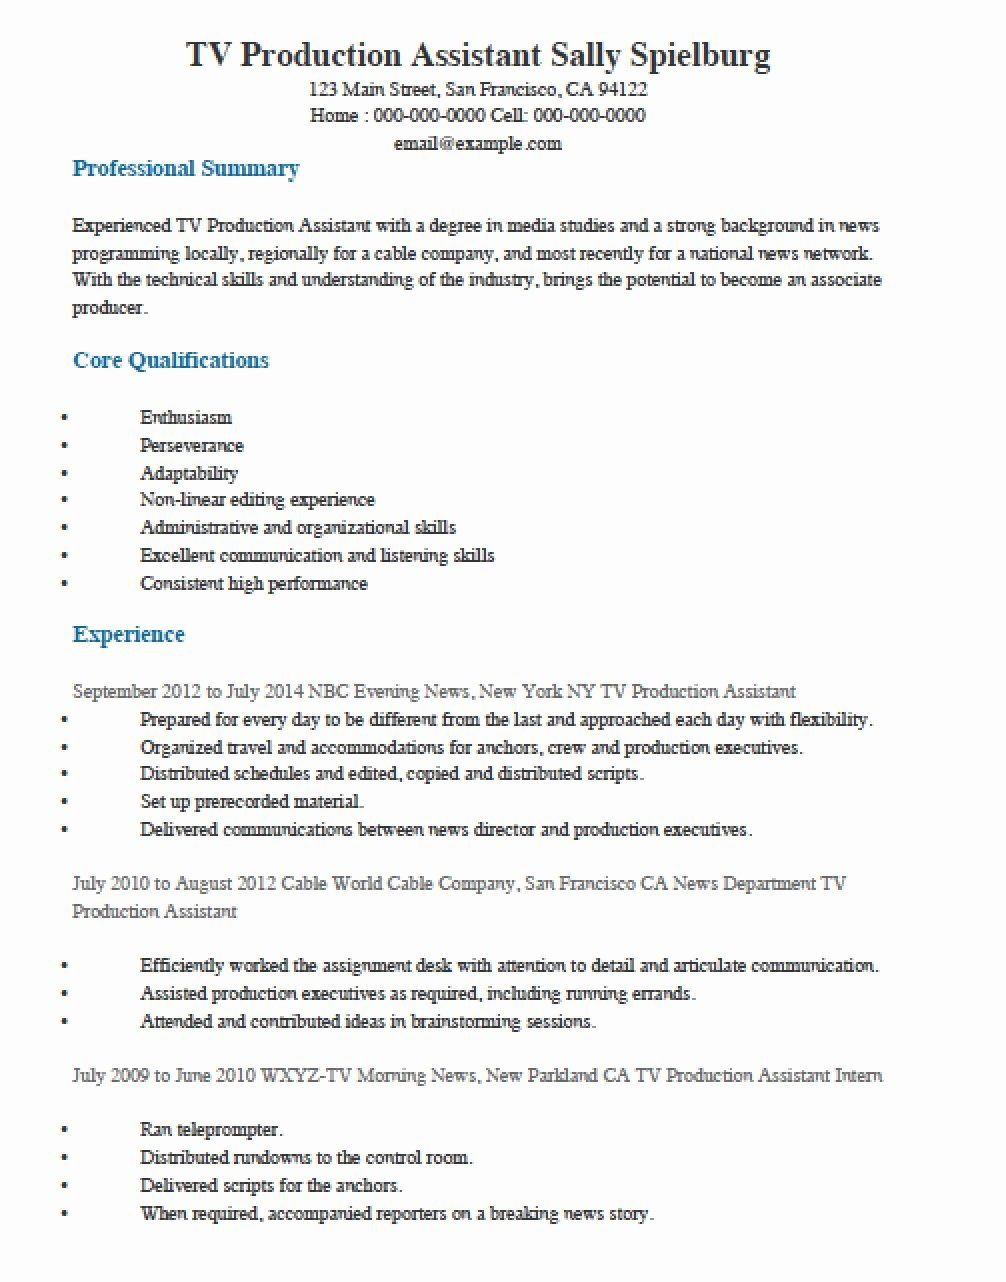 Production Assistant Resume No Experience New Television Tv Production Assistant Resume Template Resume Examples Job Description Template Resume Guide